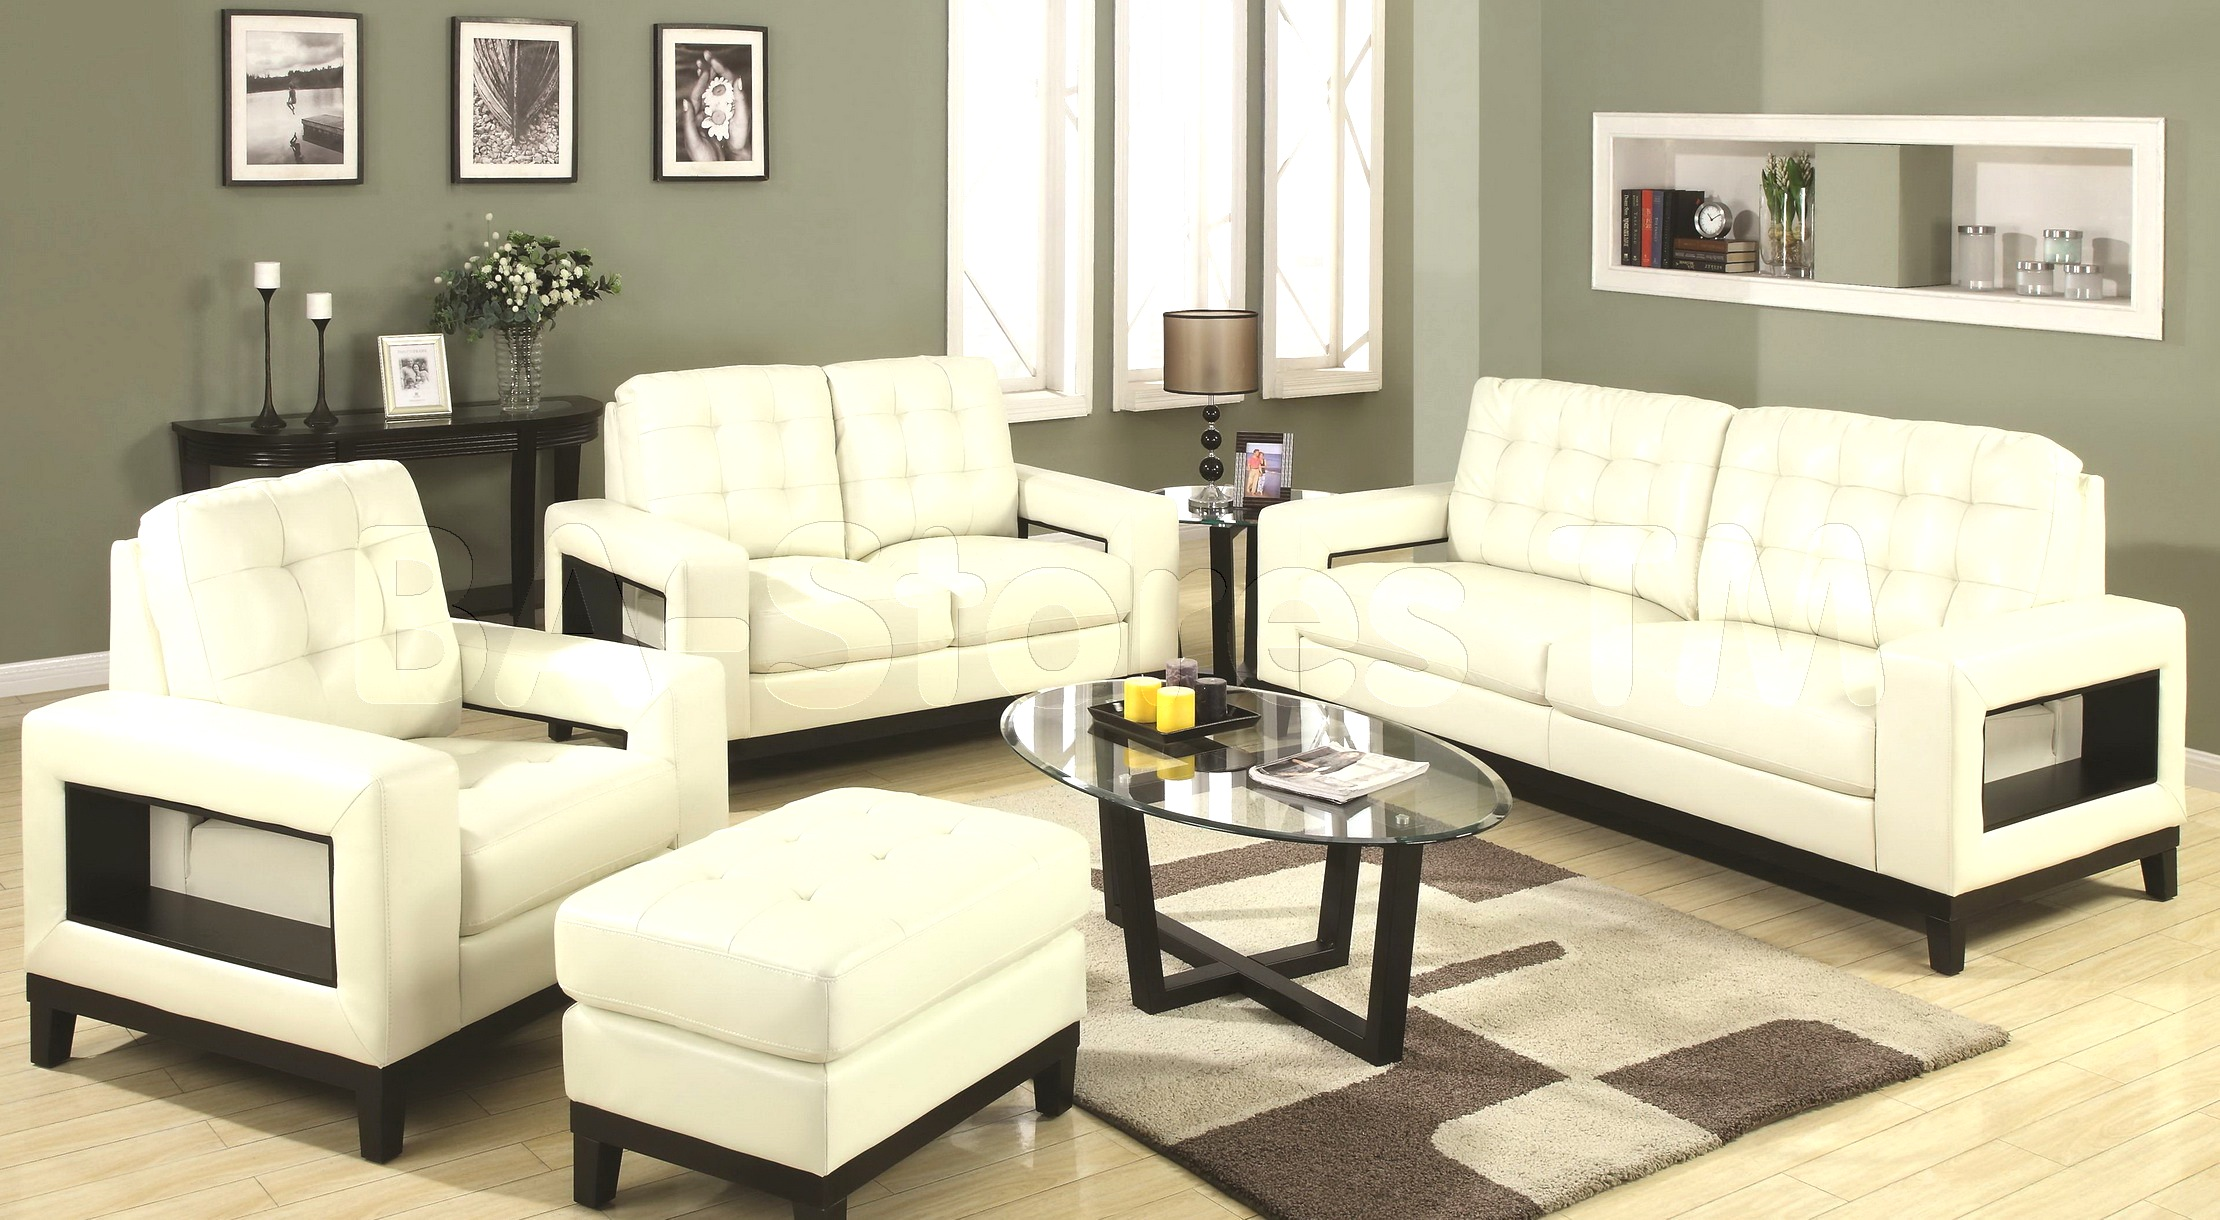 Sofa set designs home design - Modern living room chair ...